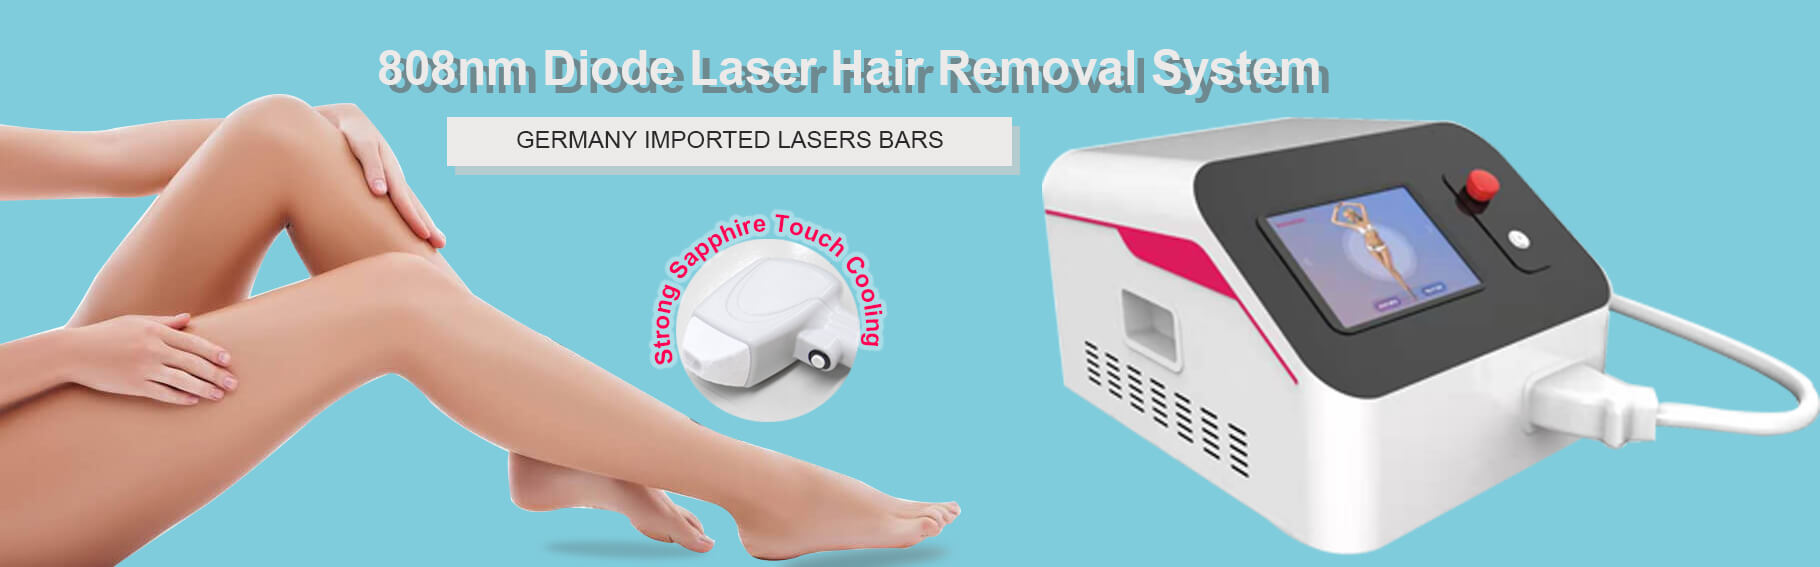 Salon Laser Hair Removal System PL 206 With Cooling System